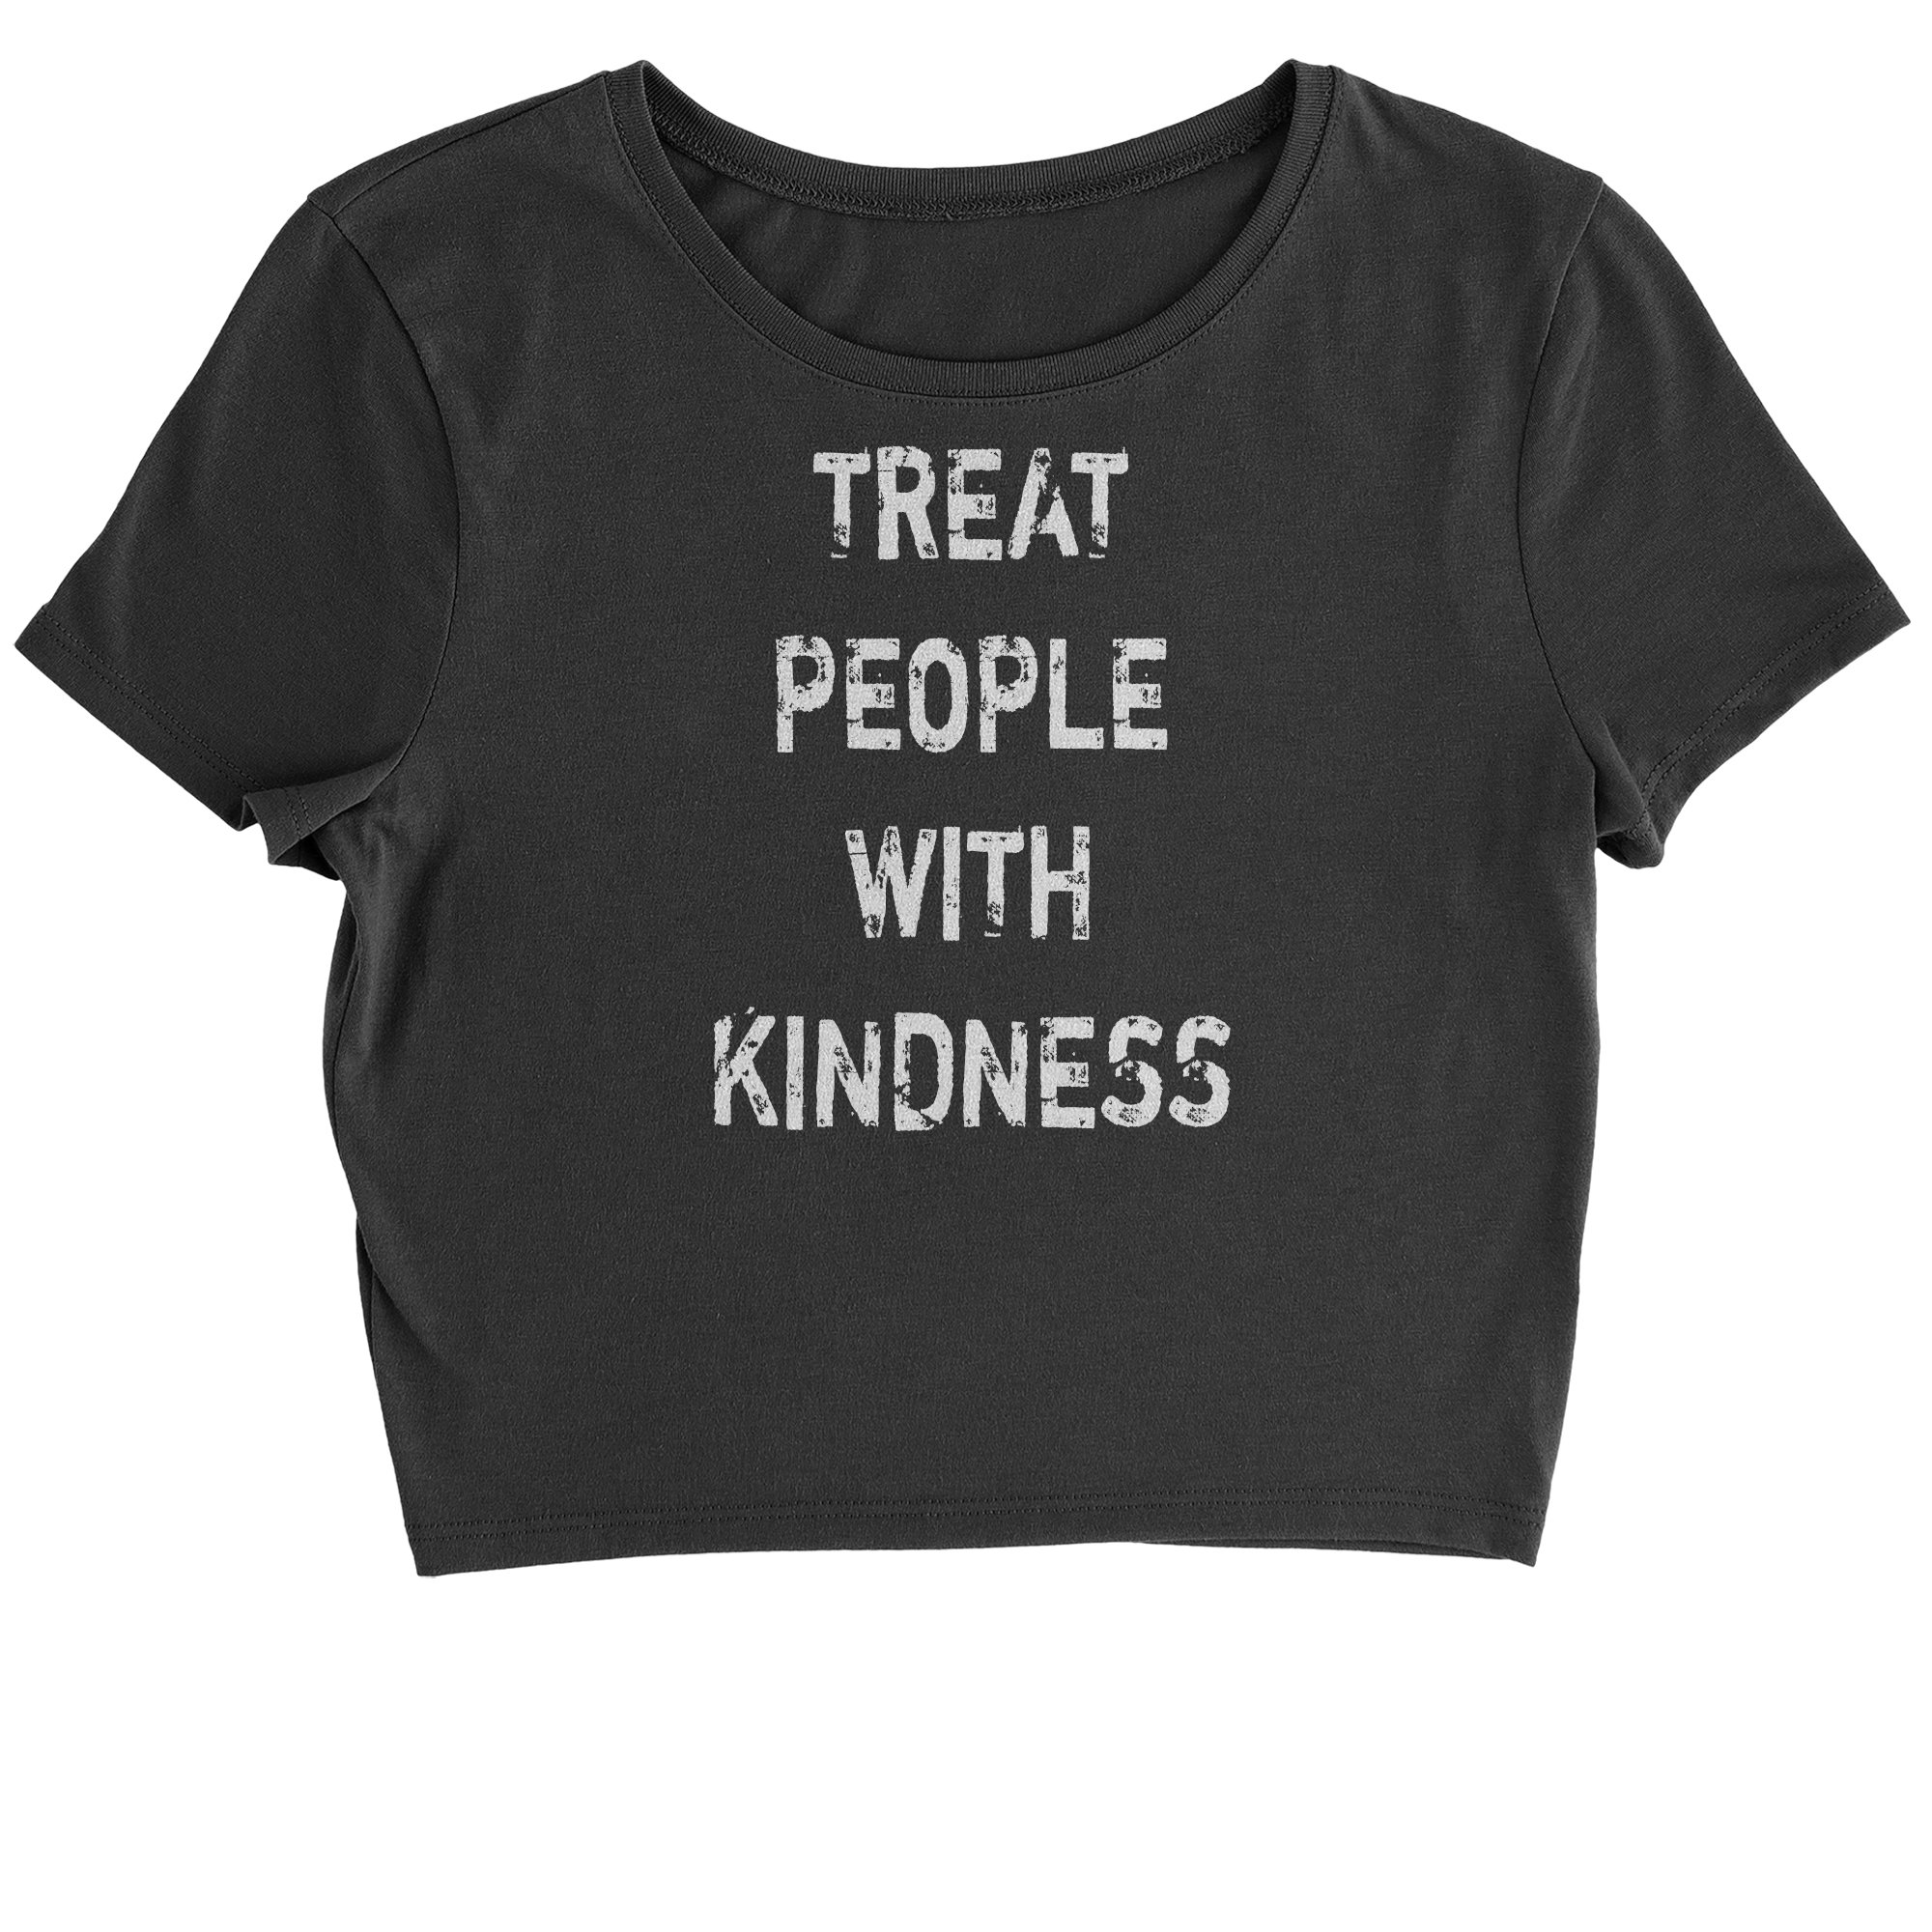 Expression Tees Cropped T-Shirt Treat People with Kindness T-Shirt Large Black